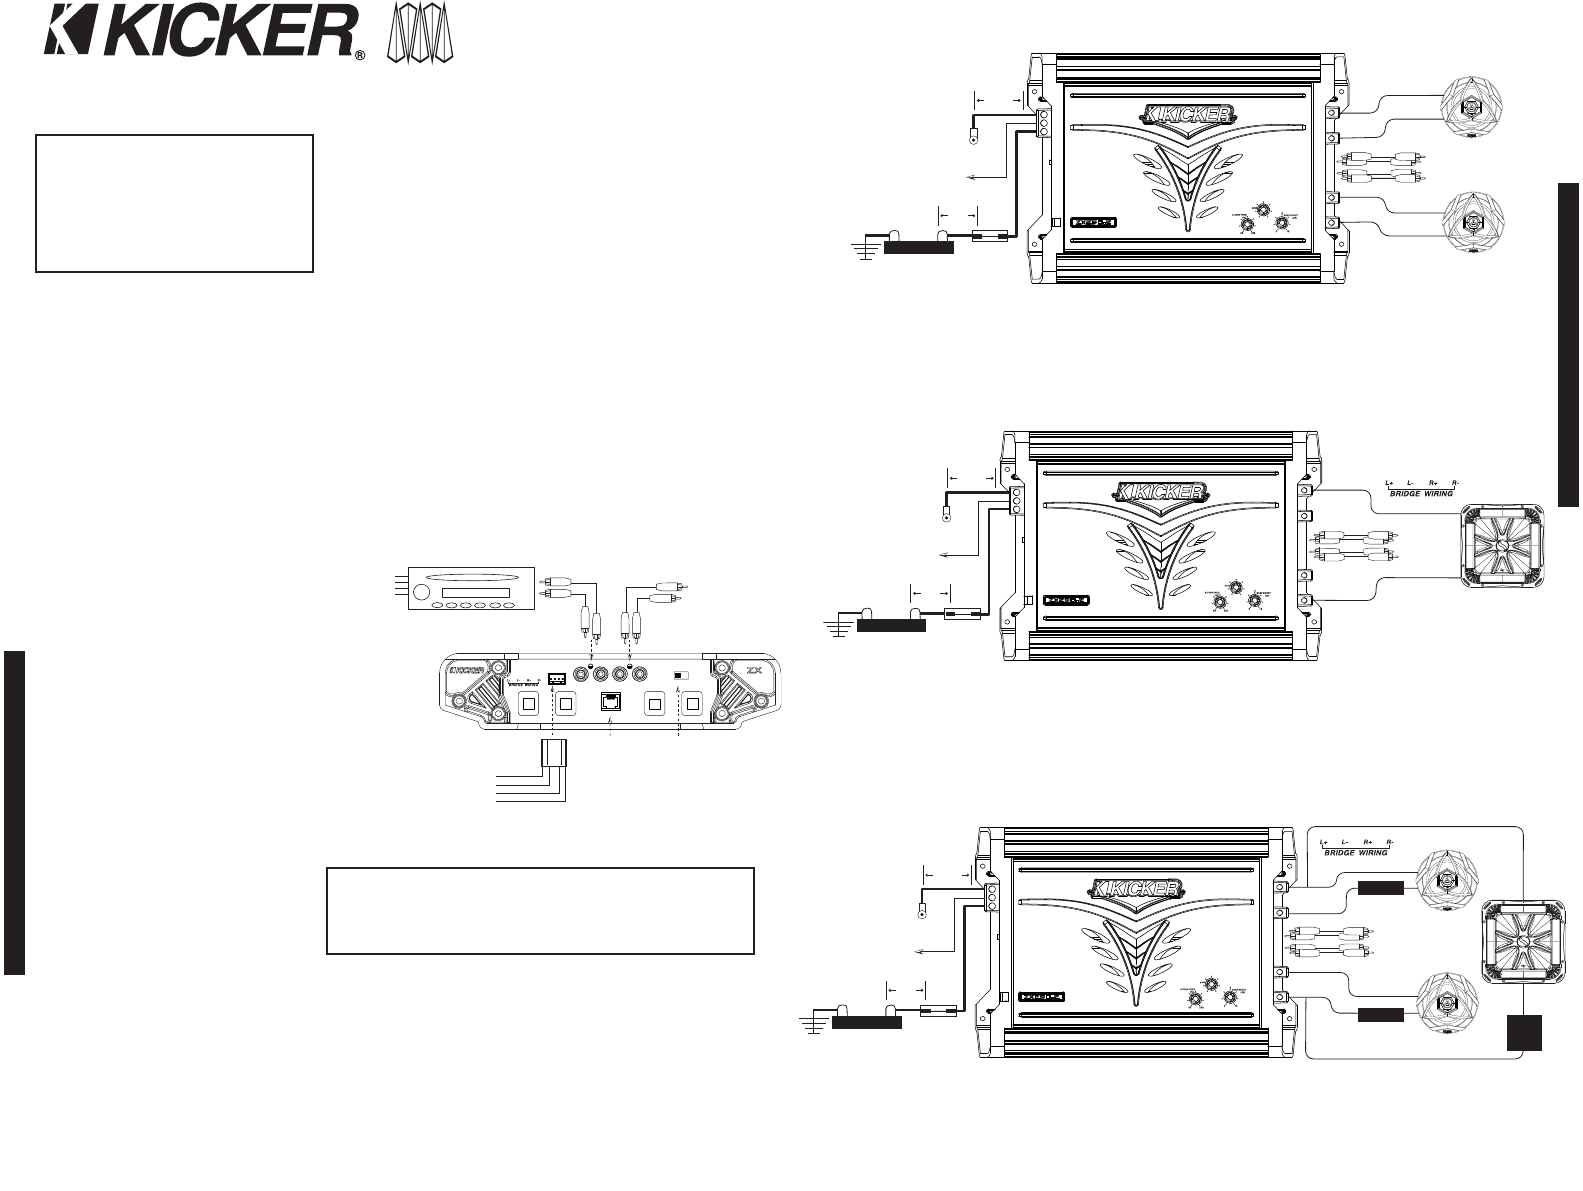 a81eae5c fe97 44a6 8b91 25020d55c55a bg2 page 2 of kicker stereo amplifier zx850 2 user guide on kicker cx1200 1 wiring diagram